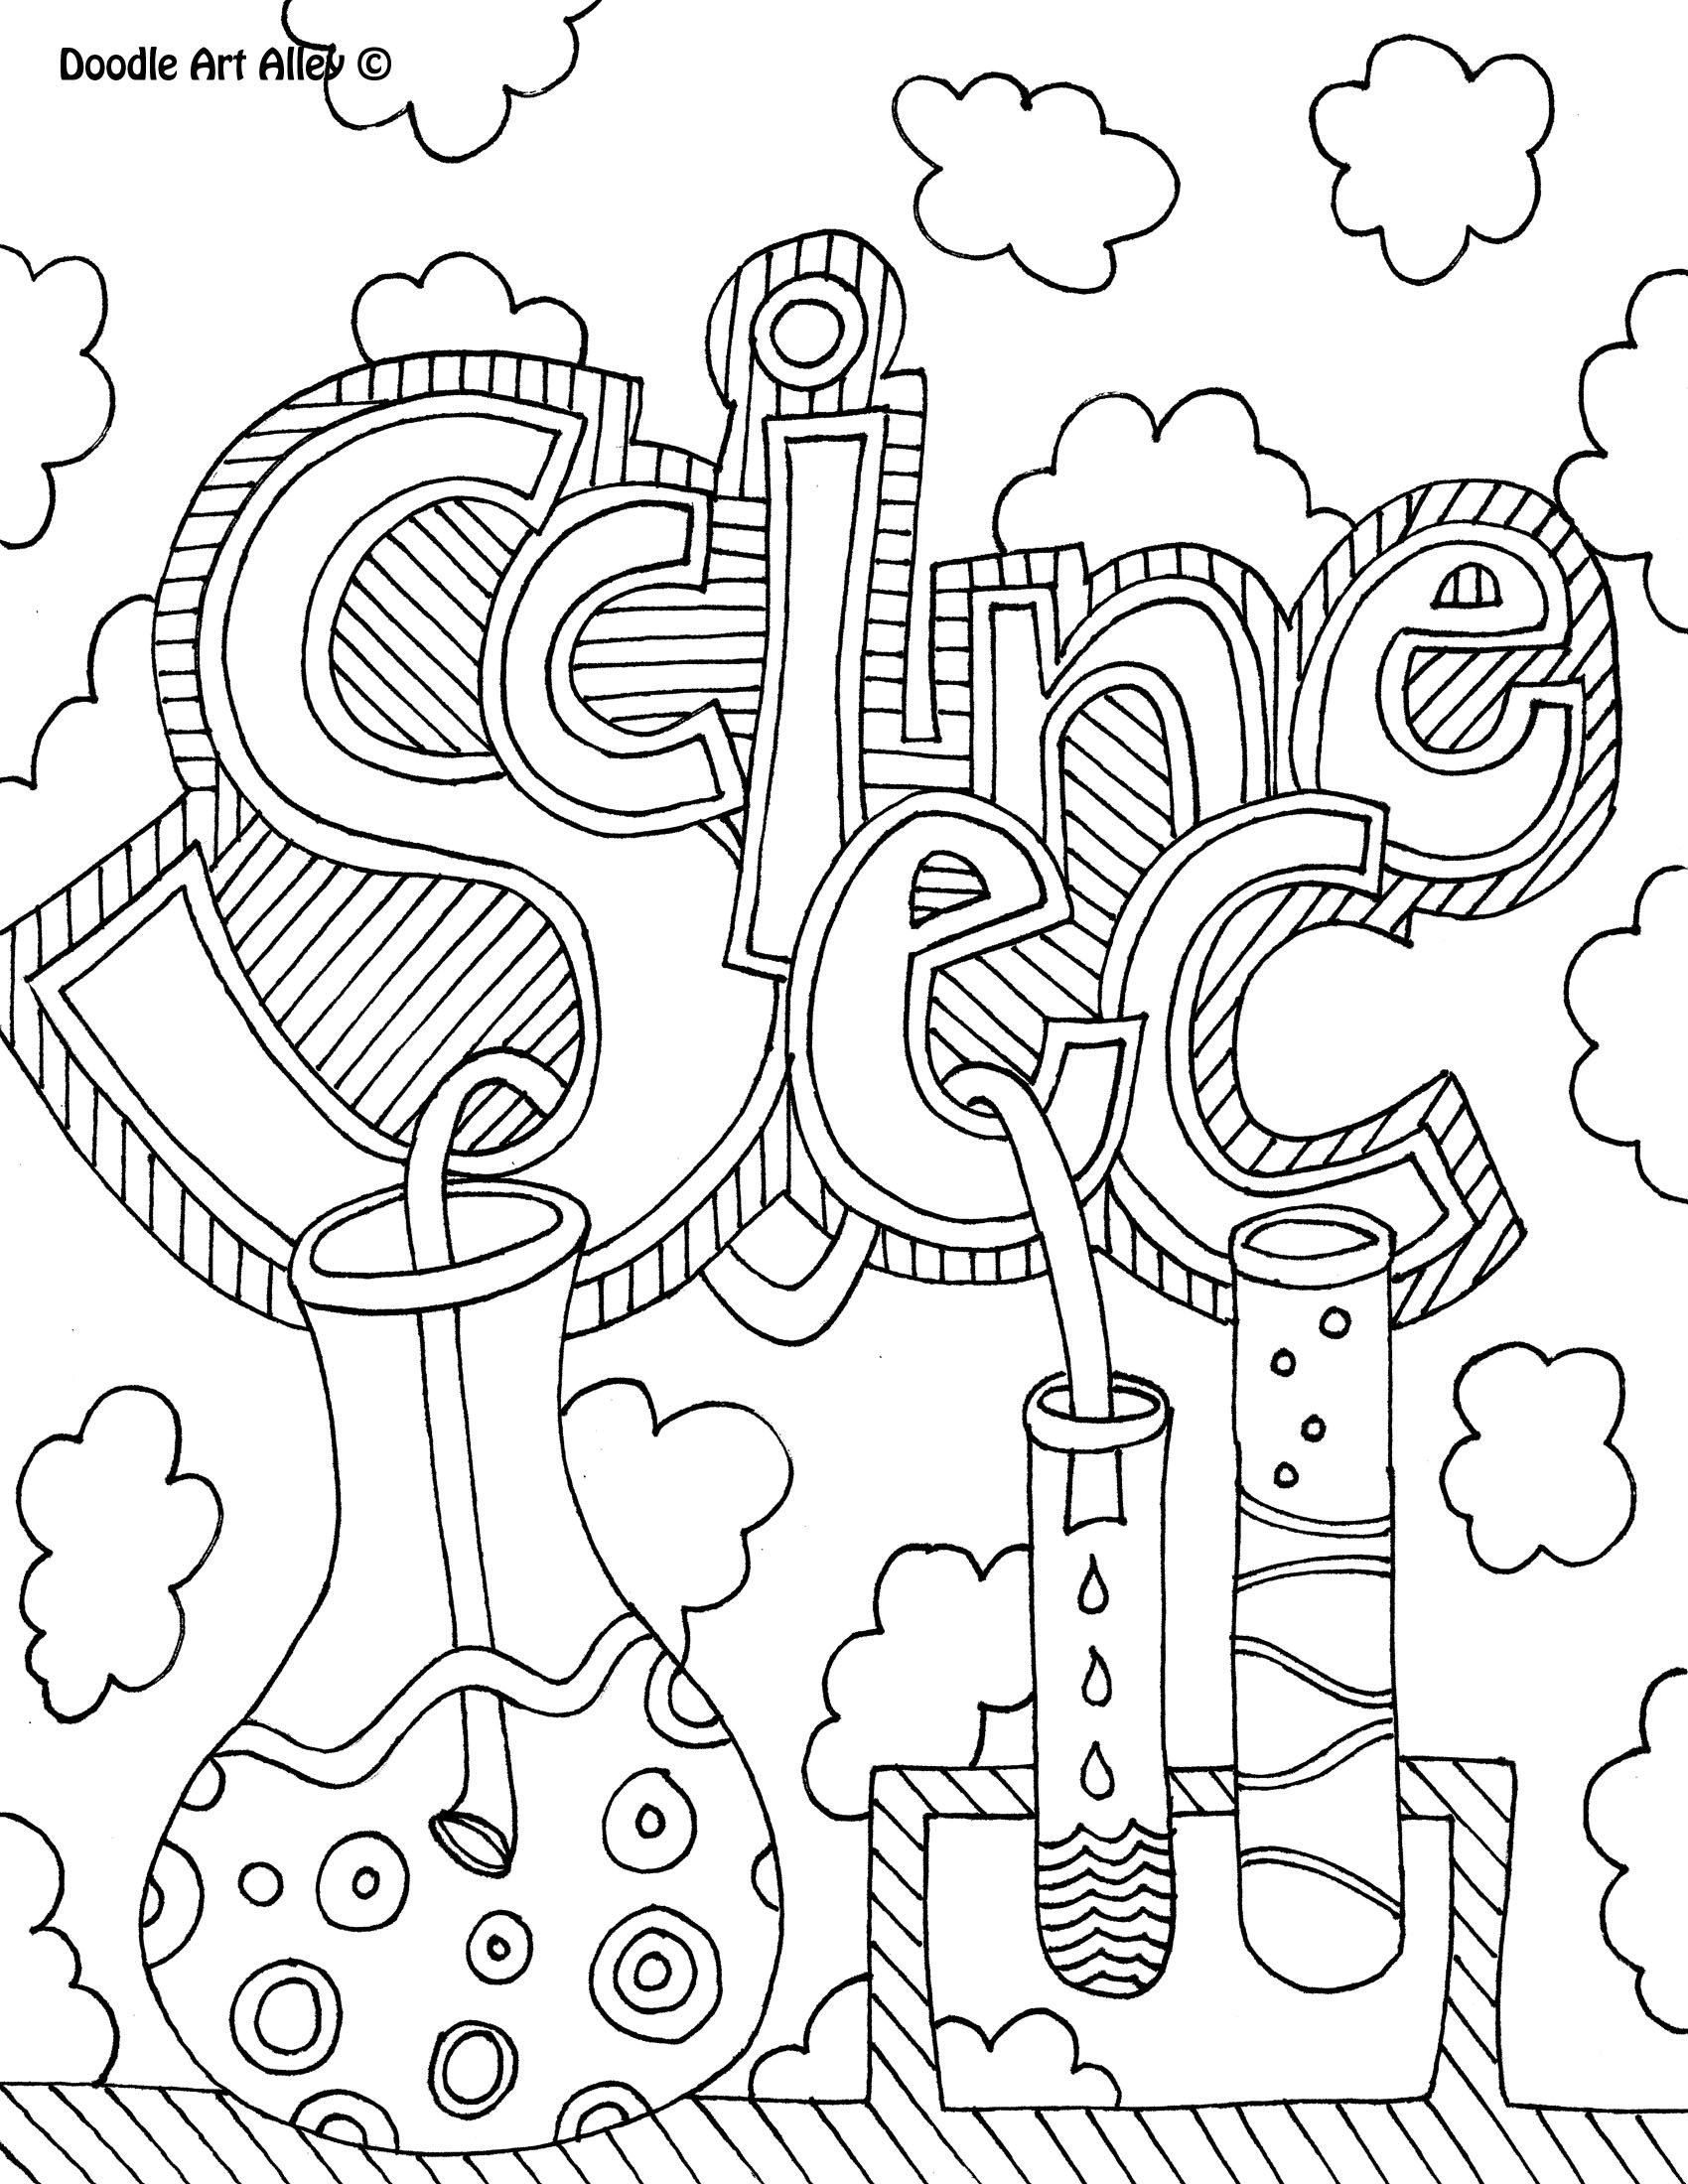 elementary school coloring pages elementary school coloring pages at getcoloringscom coloring pages school elementary